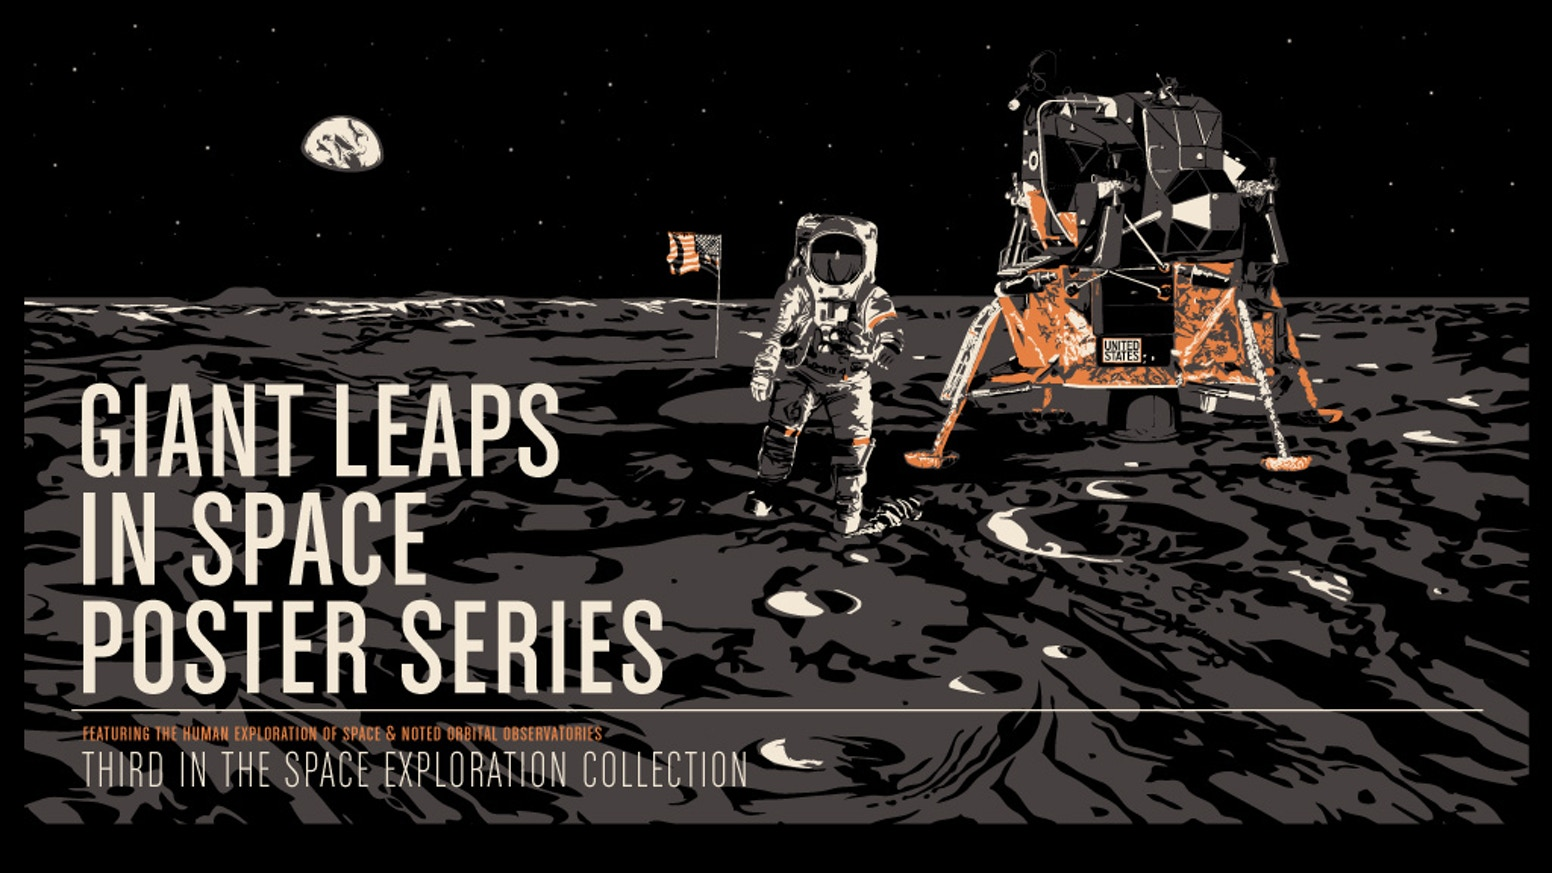 Giant Leaps featuring the historic missions of human spaceflight is the third in our series of space exploration prints